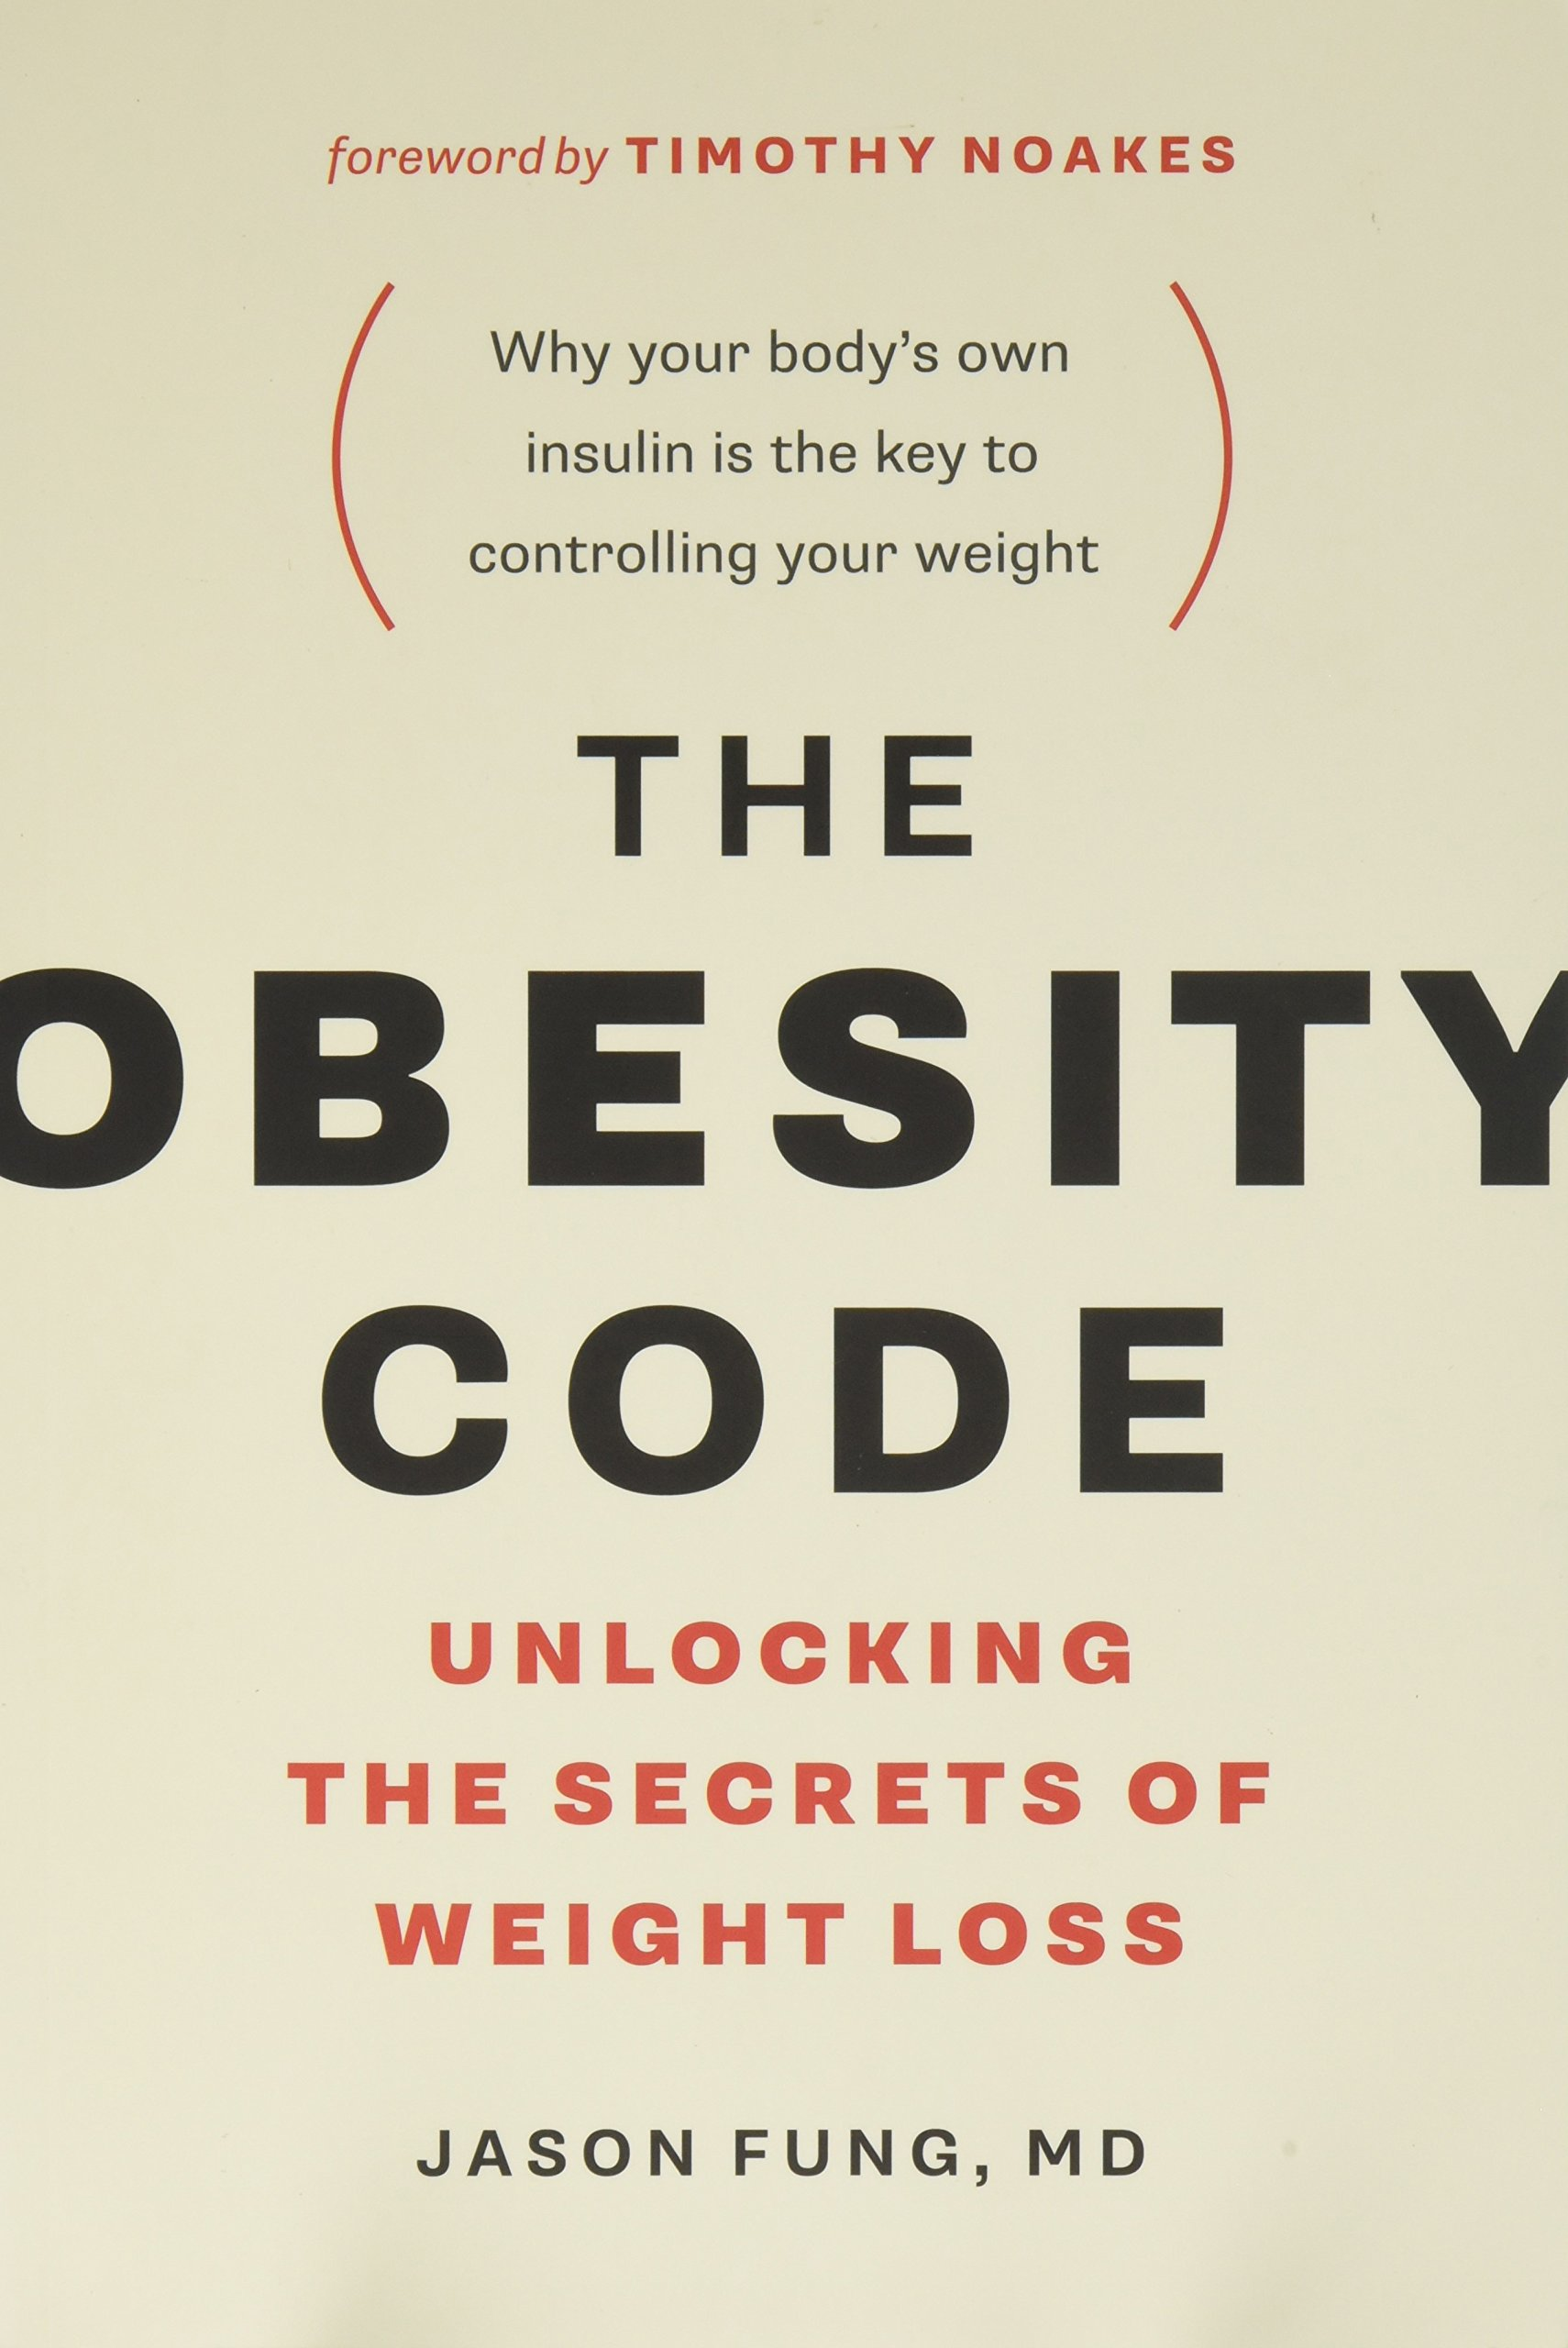 The obesity code unlocking the secrets of weight loss dr jason the obesity code unlocking the secrets of weight loss dr jason fung timothy noakes 9781771641258 amazon books fandeluxe Choice Image